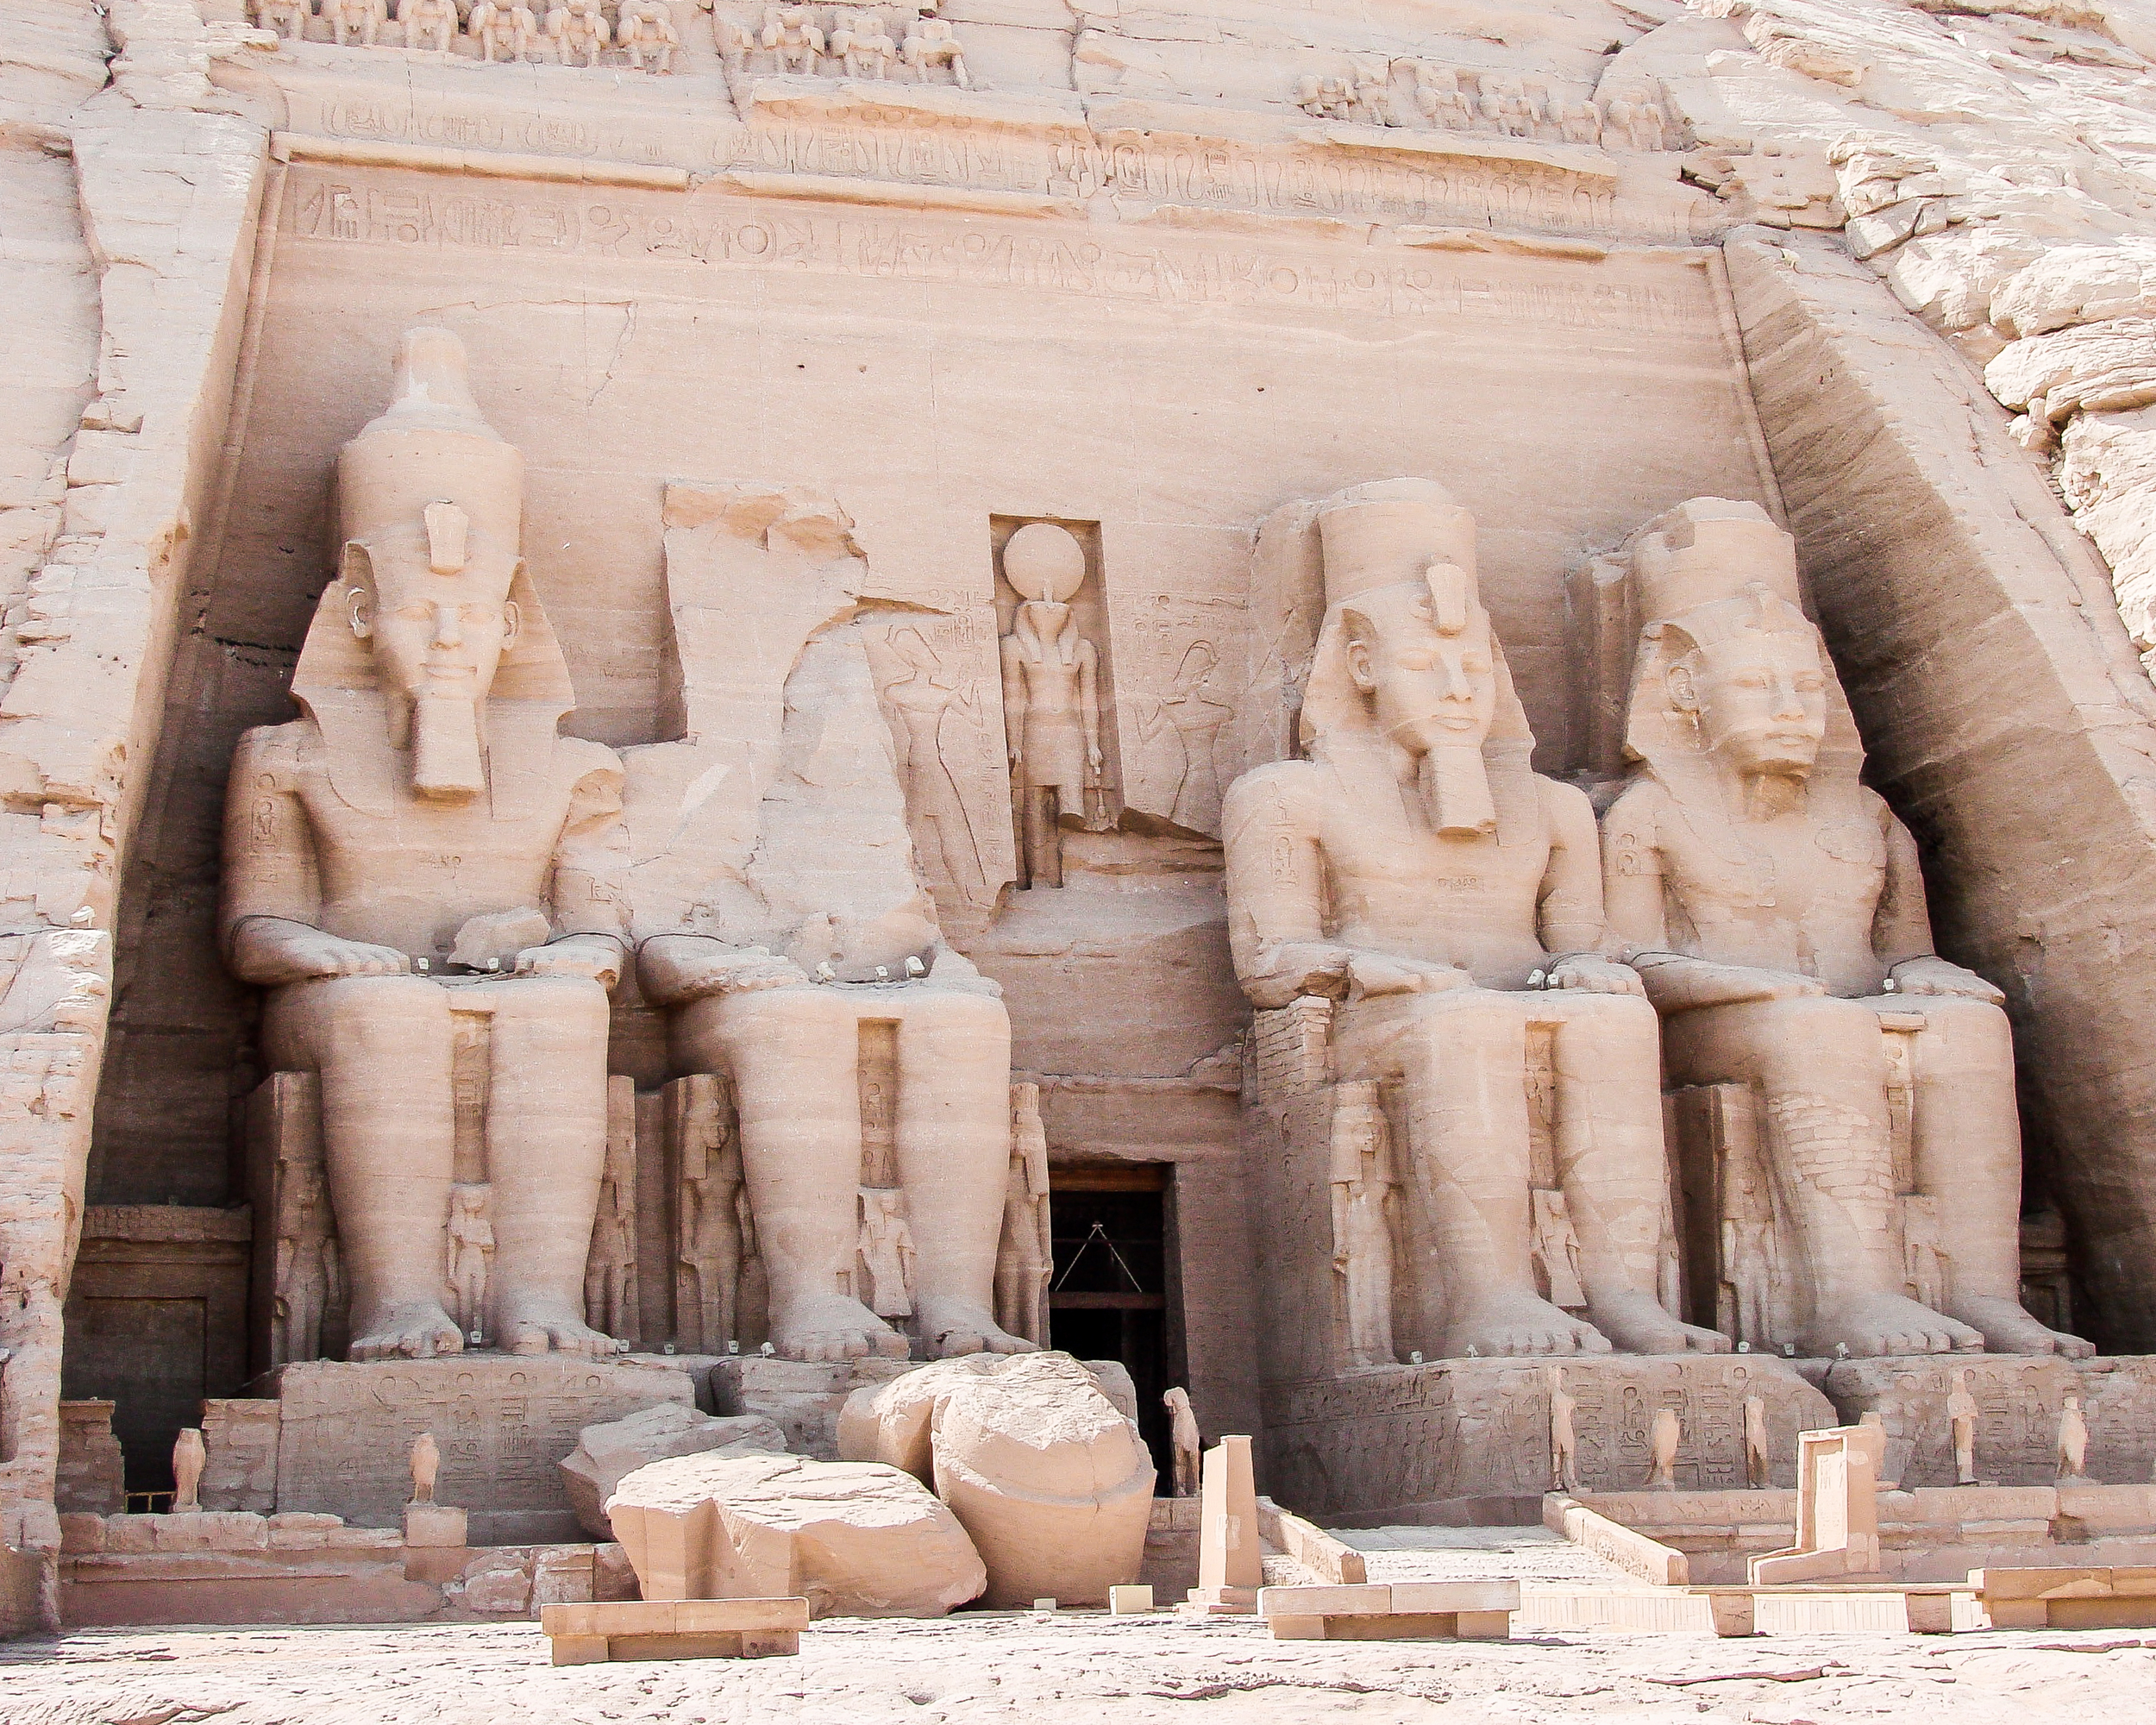 Power - Abu Simbel (Egypt)